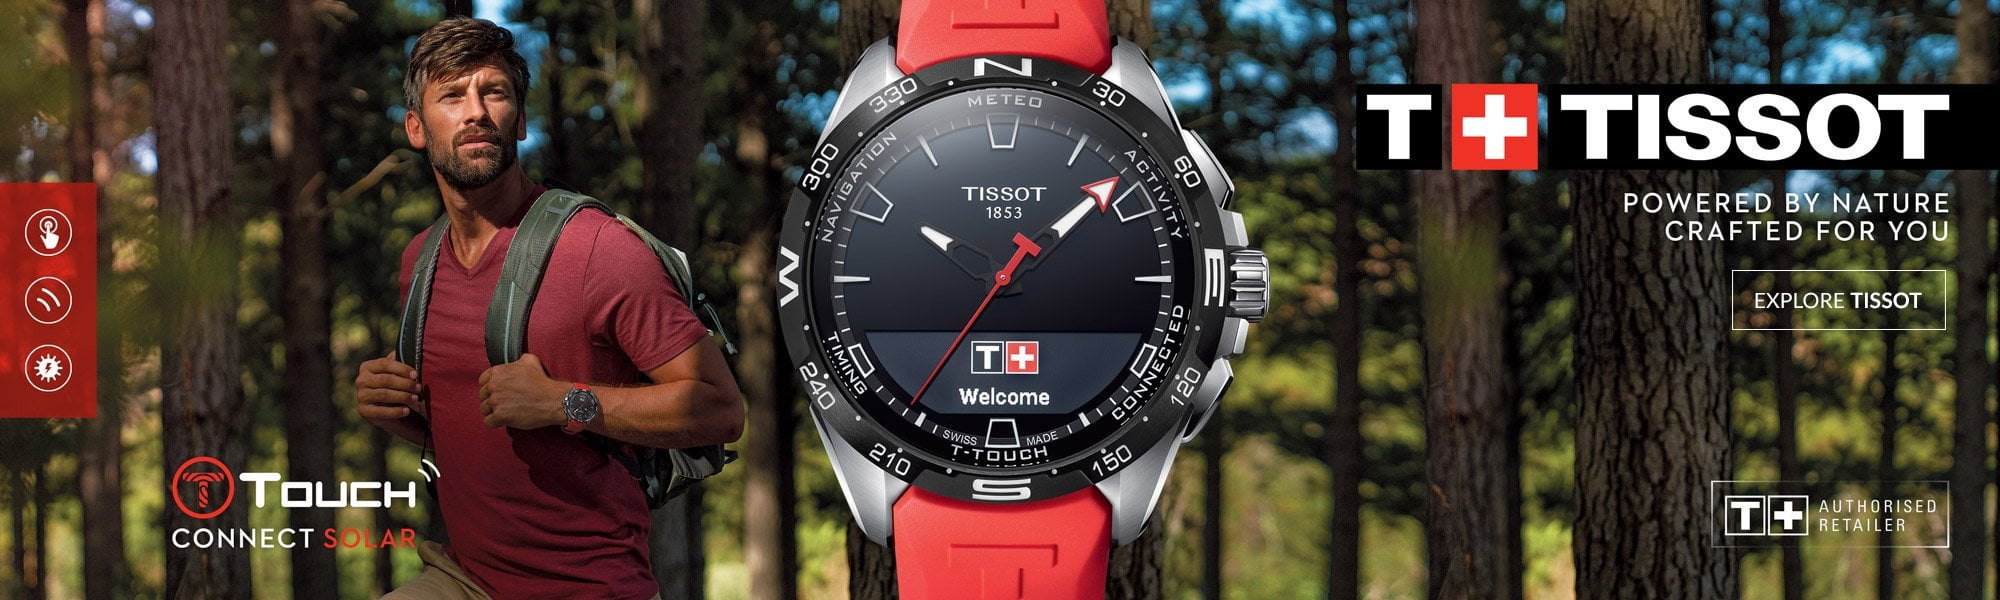 Tissot Watches - Explore the Collection